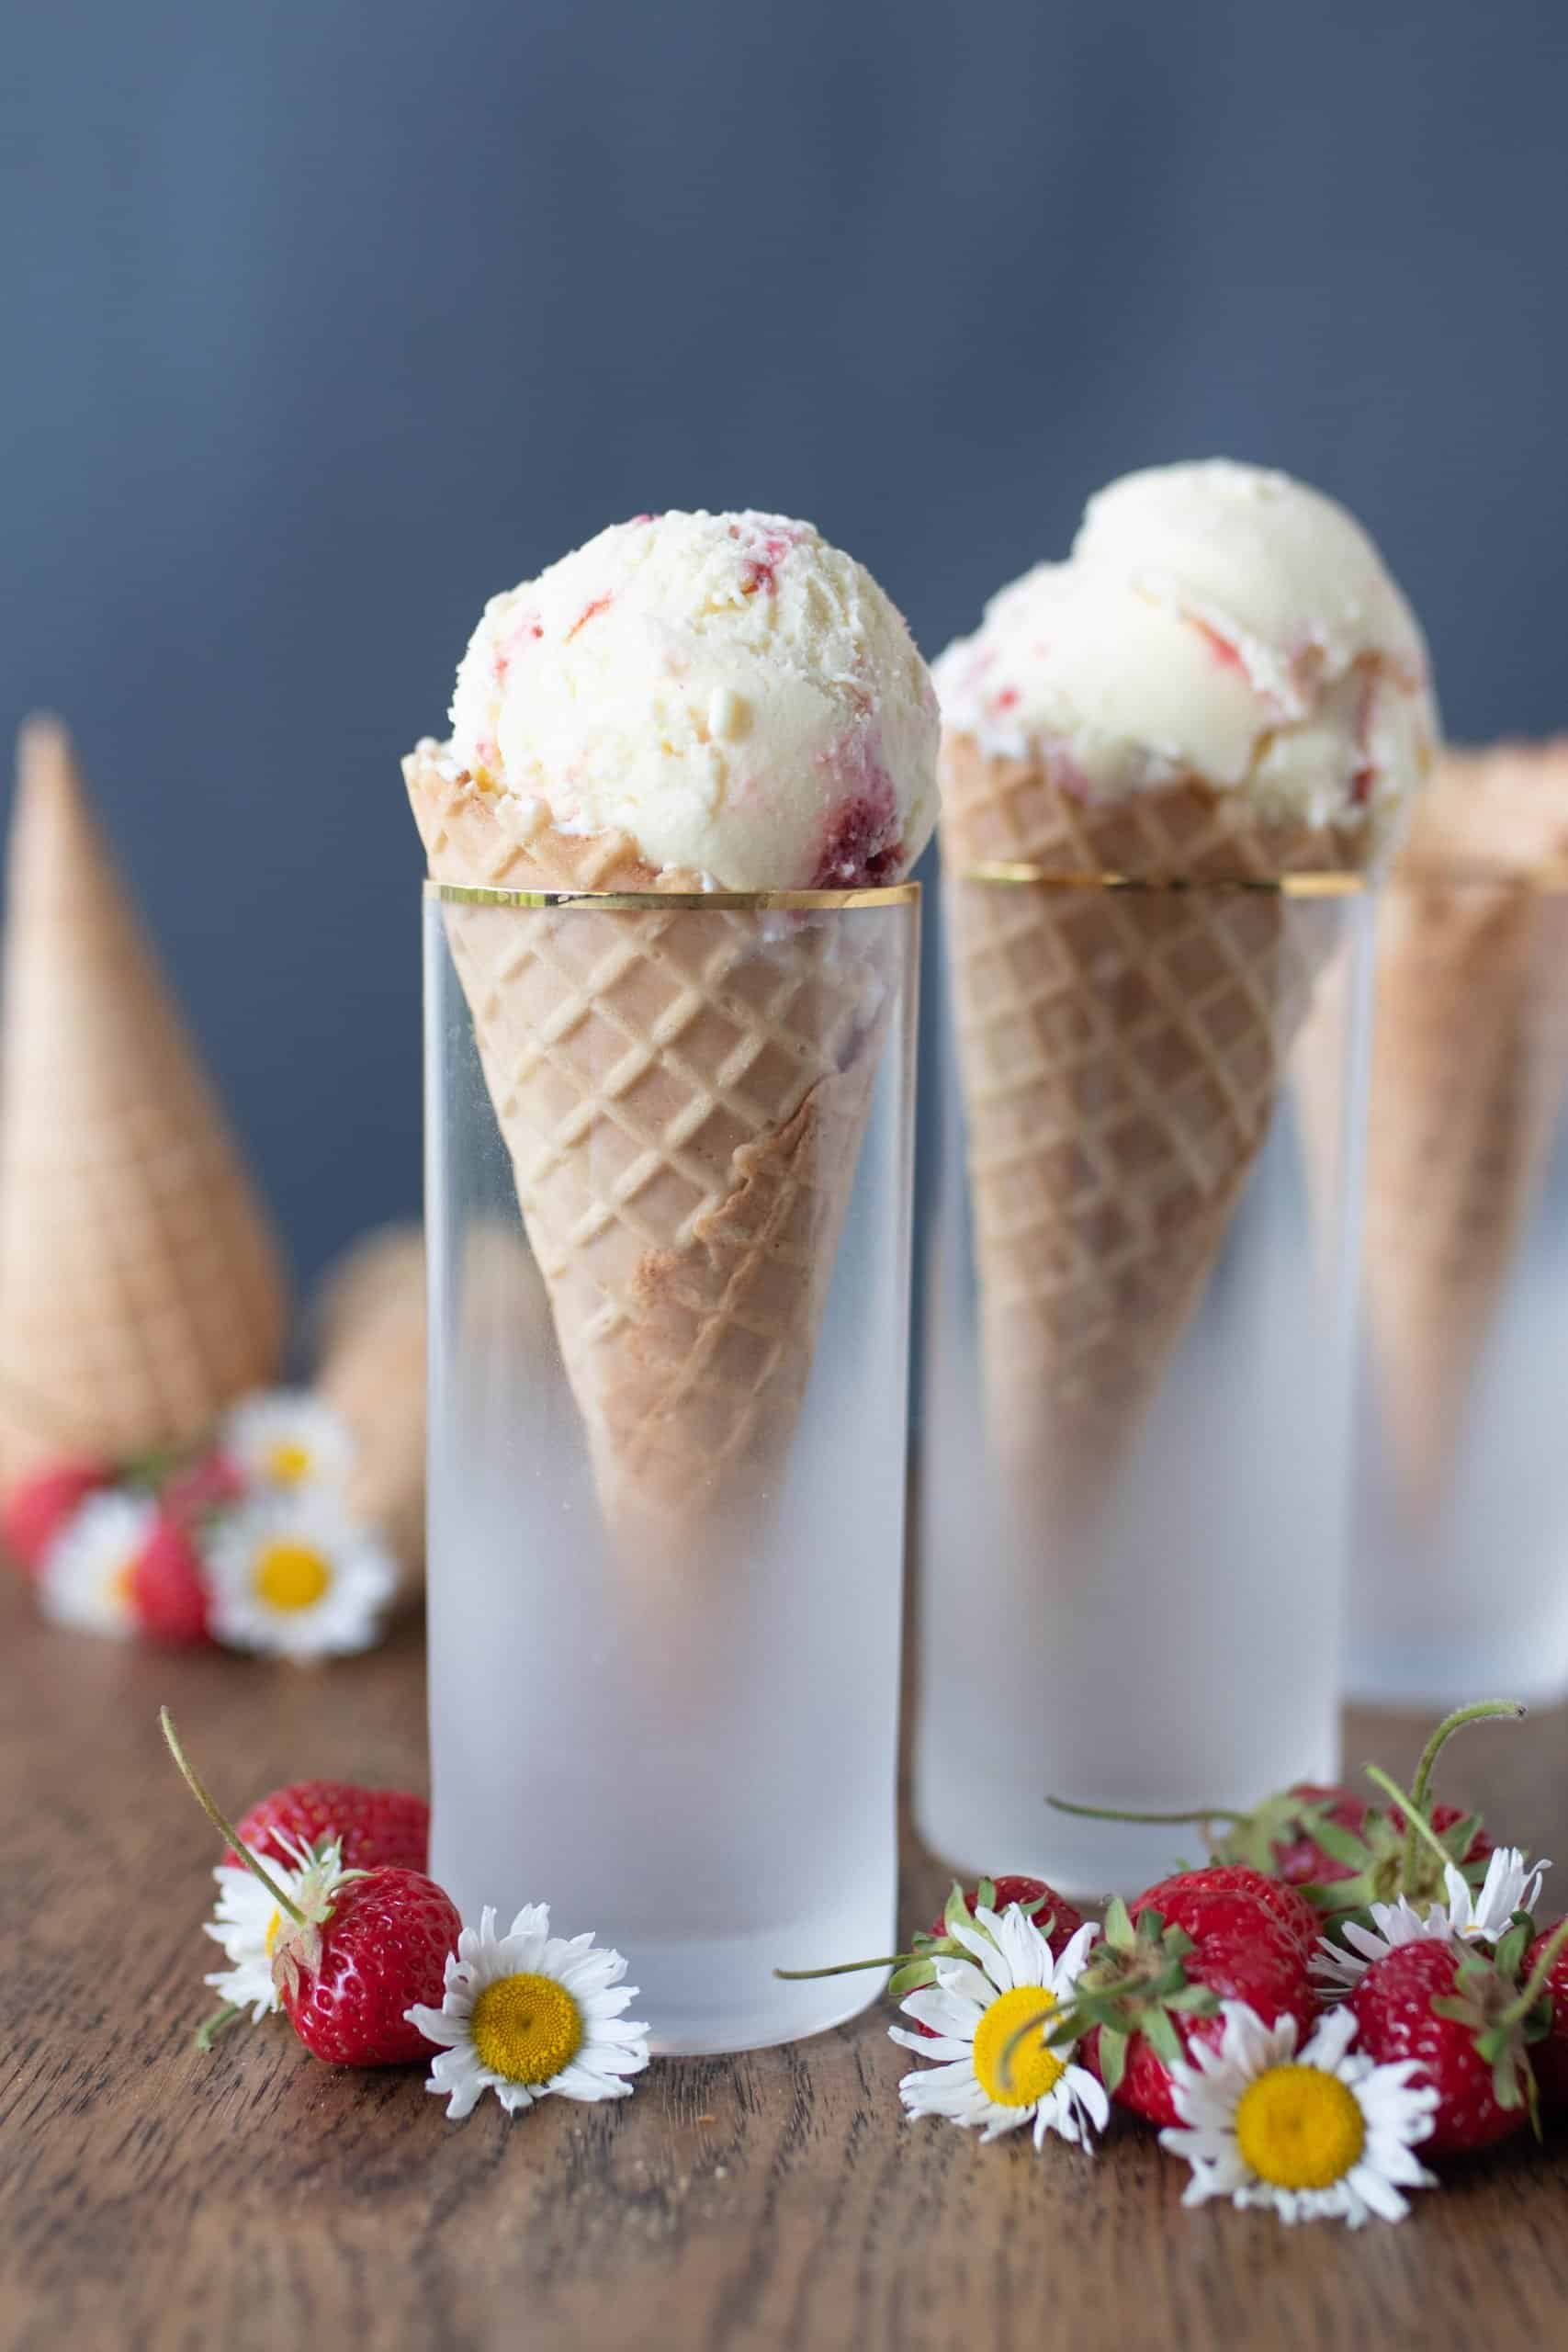 cones filled with strawberry cheesecake ice cream in cones in glasses on a wood table with strawberries and flowers spread across the table